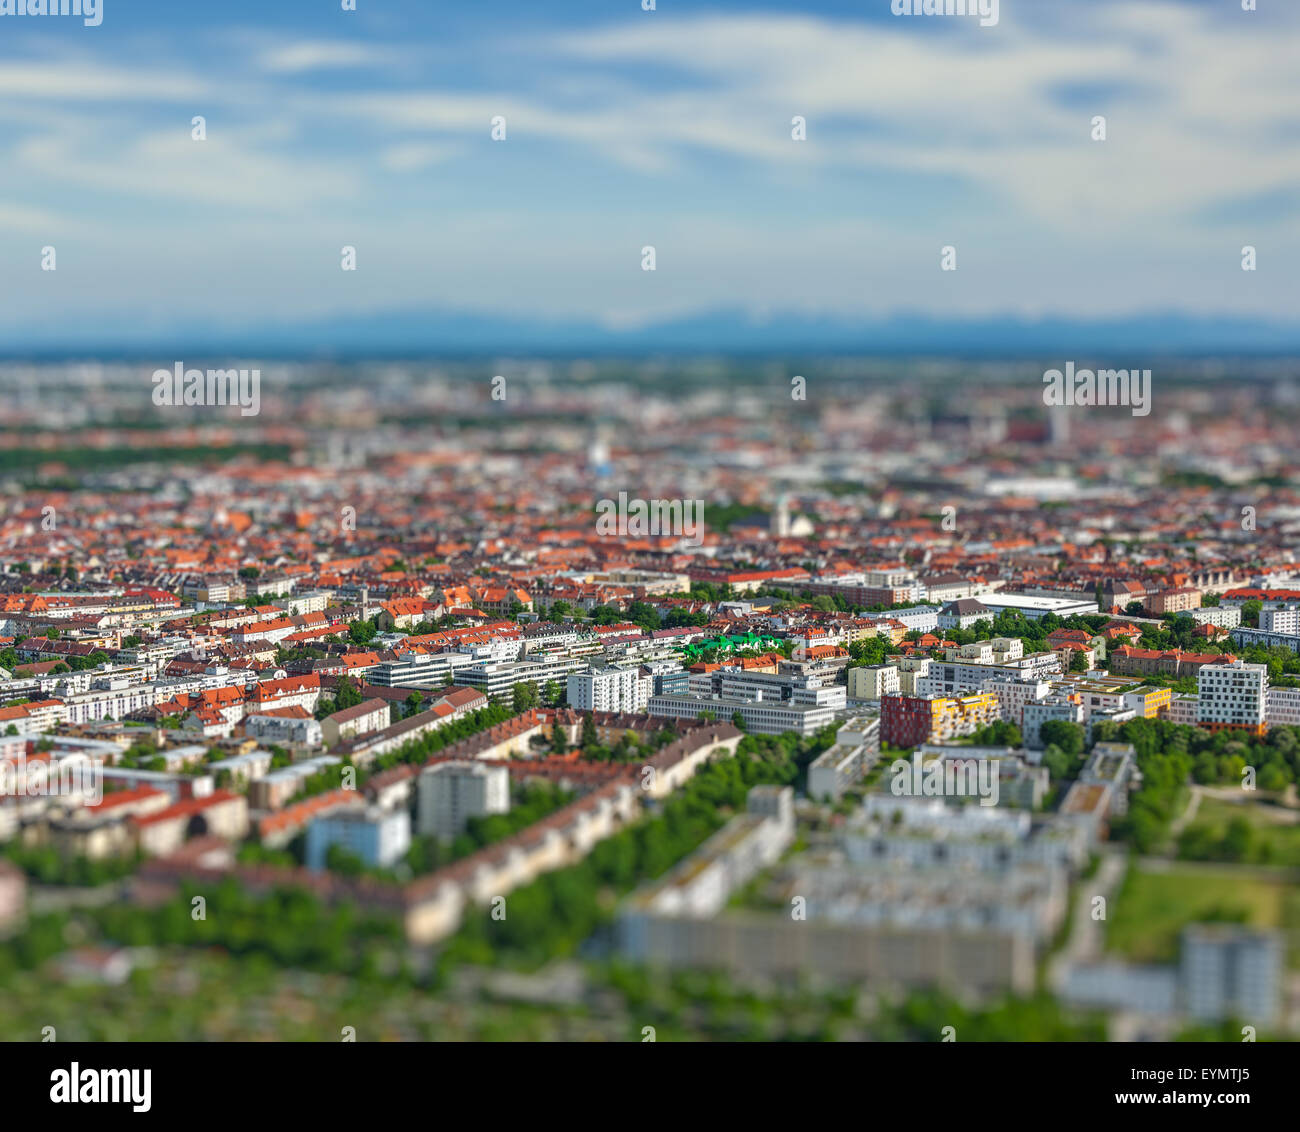 Aerial view of Munich from Olympiaturm Olympic Tower. Munich, Bavaria, Germany with tilt shift toy effect shallow - Stock Image